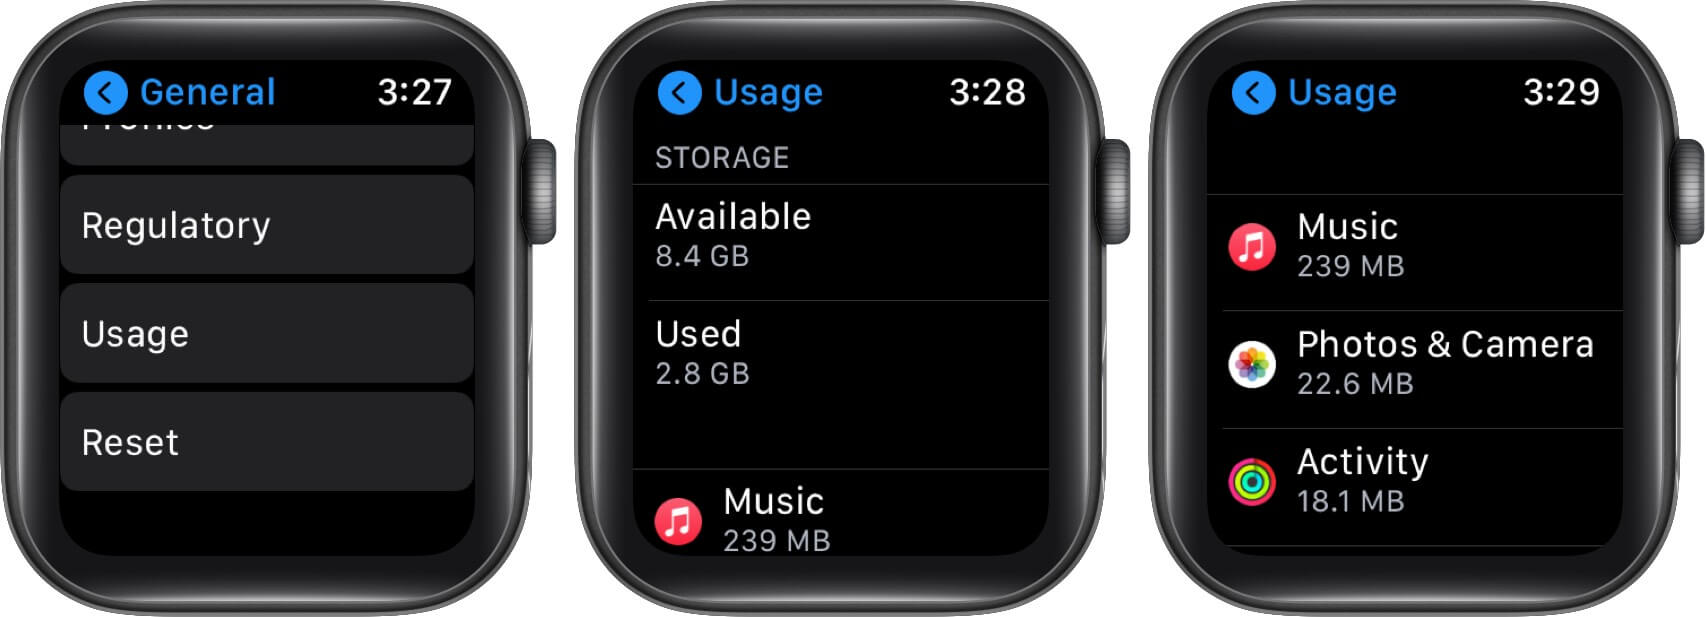 tap on usage to check storage on apple watch